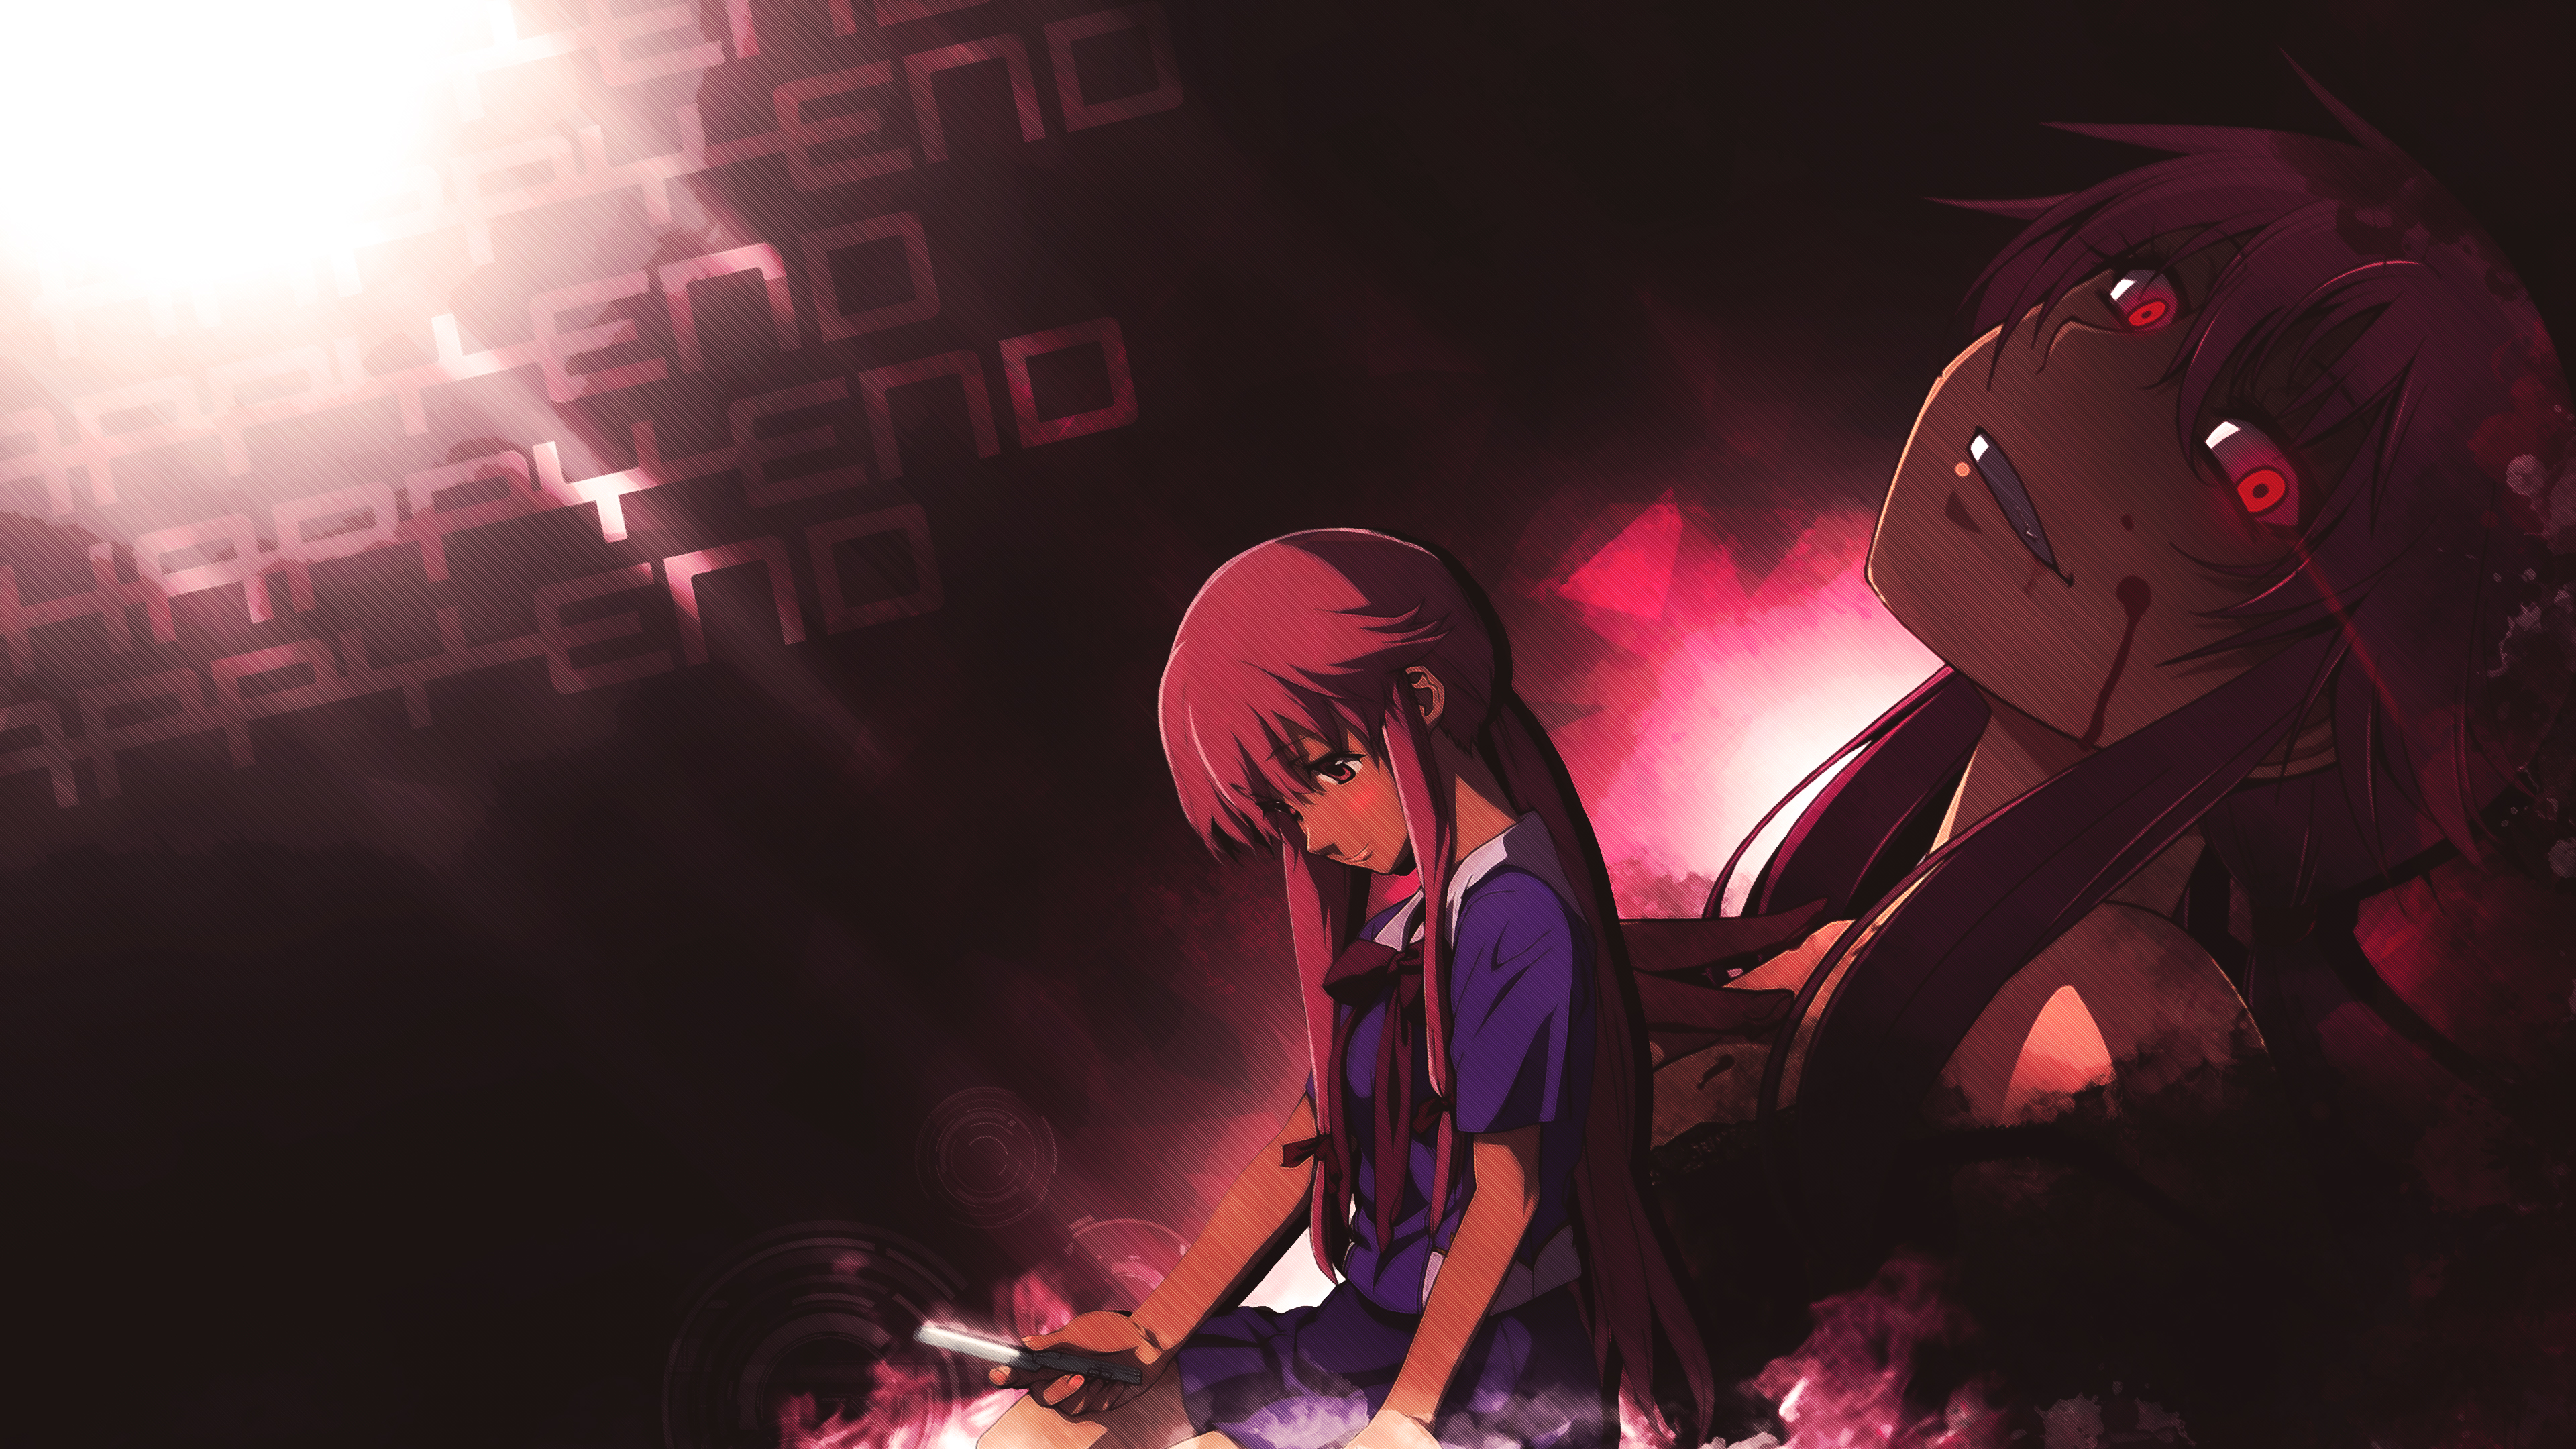 Gasai Yuno Wallpaper: Mirai Nikki 4k Ultra HD Wallpaper